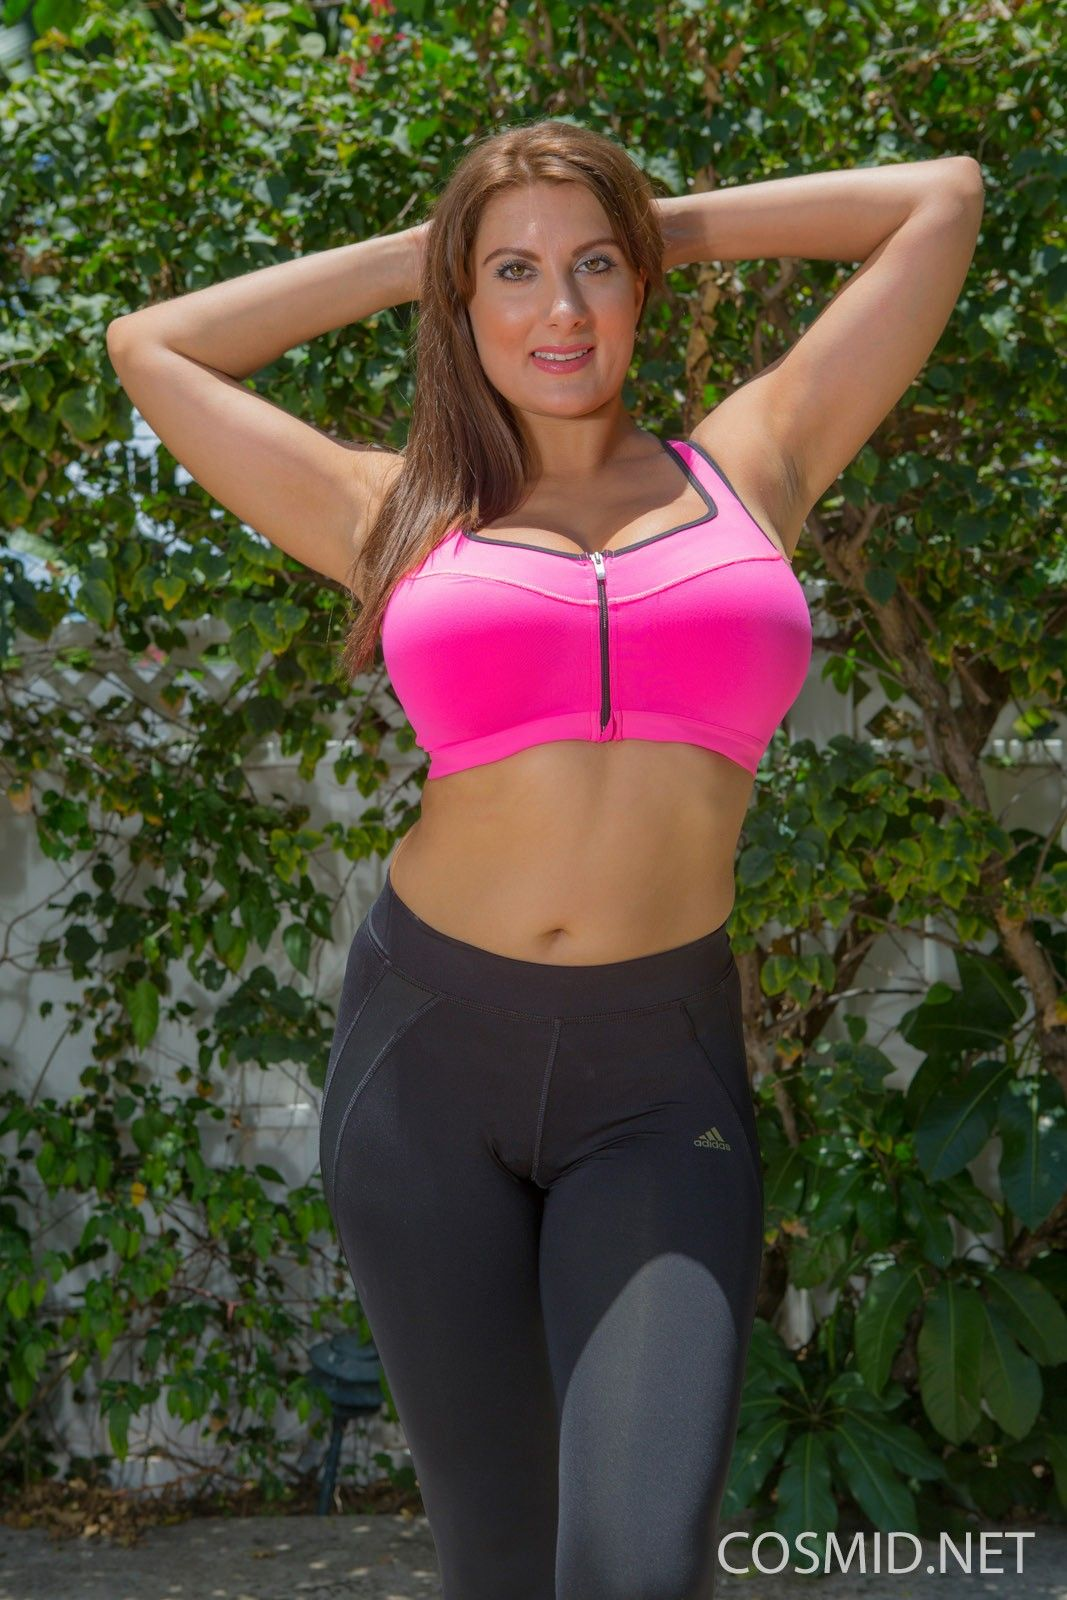 Busty milf outdoors photo